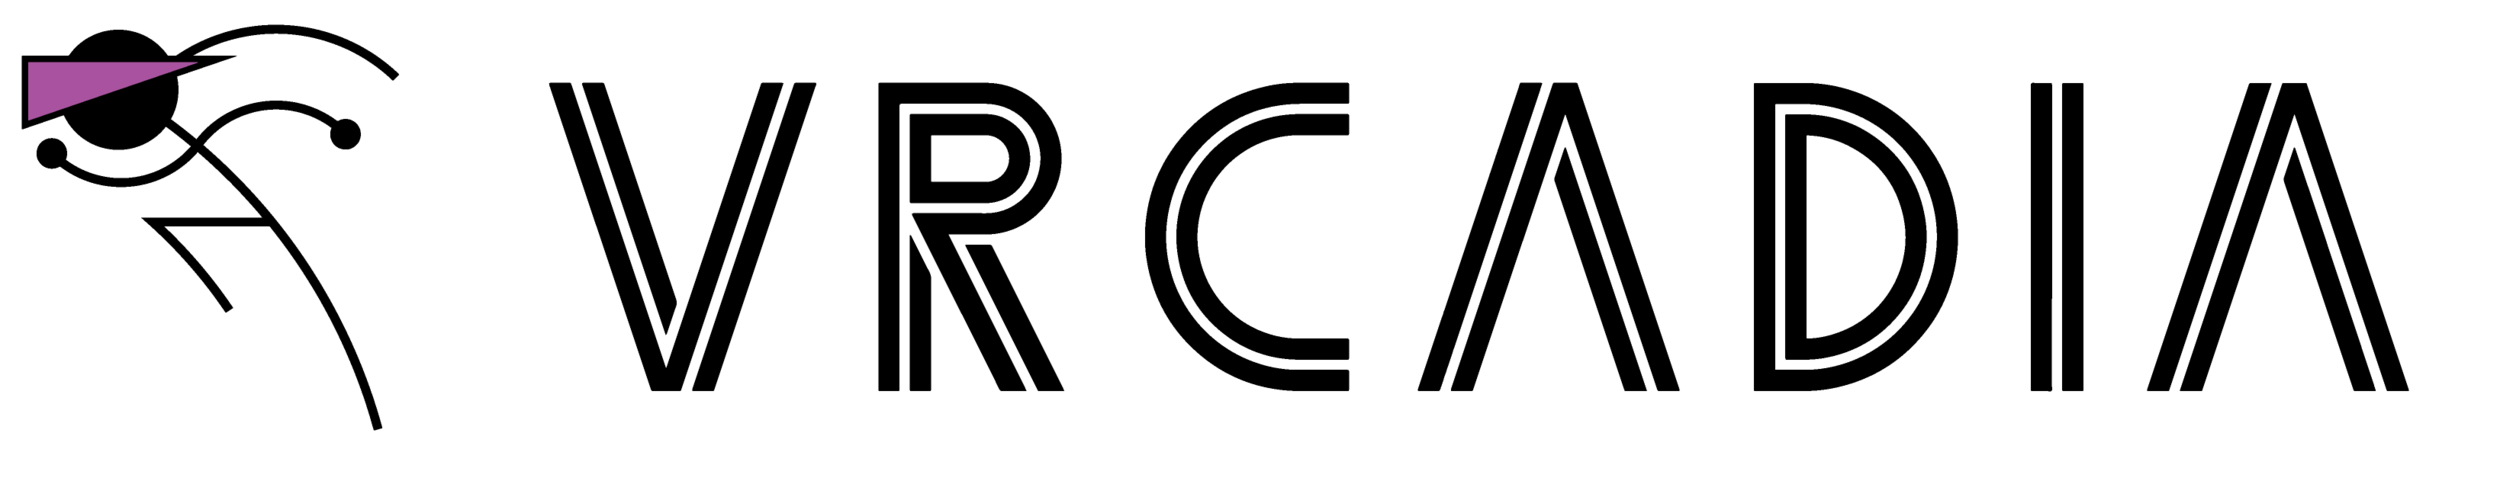 VRcadia_Logo_and_Text_Black.png